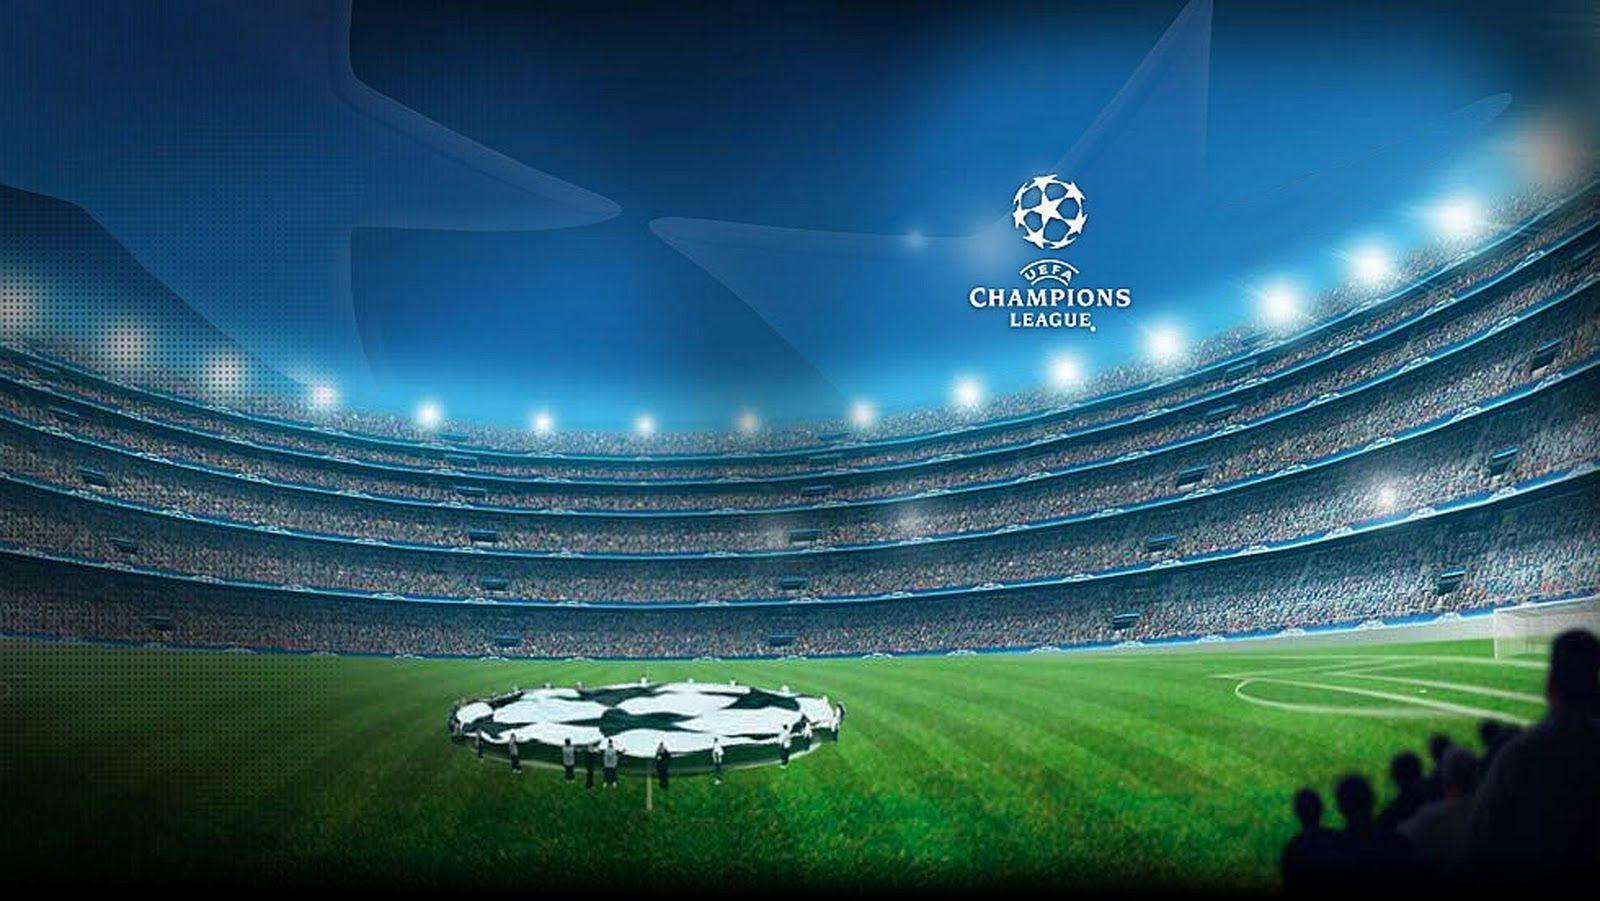 uefa-champions-league-wallpaper-in-hd-10 | Just Wallpapers